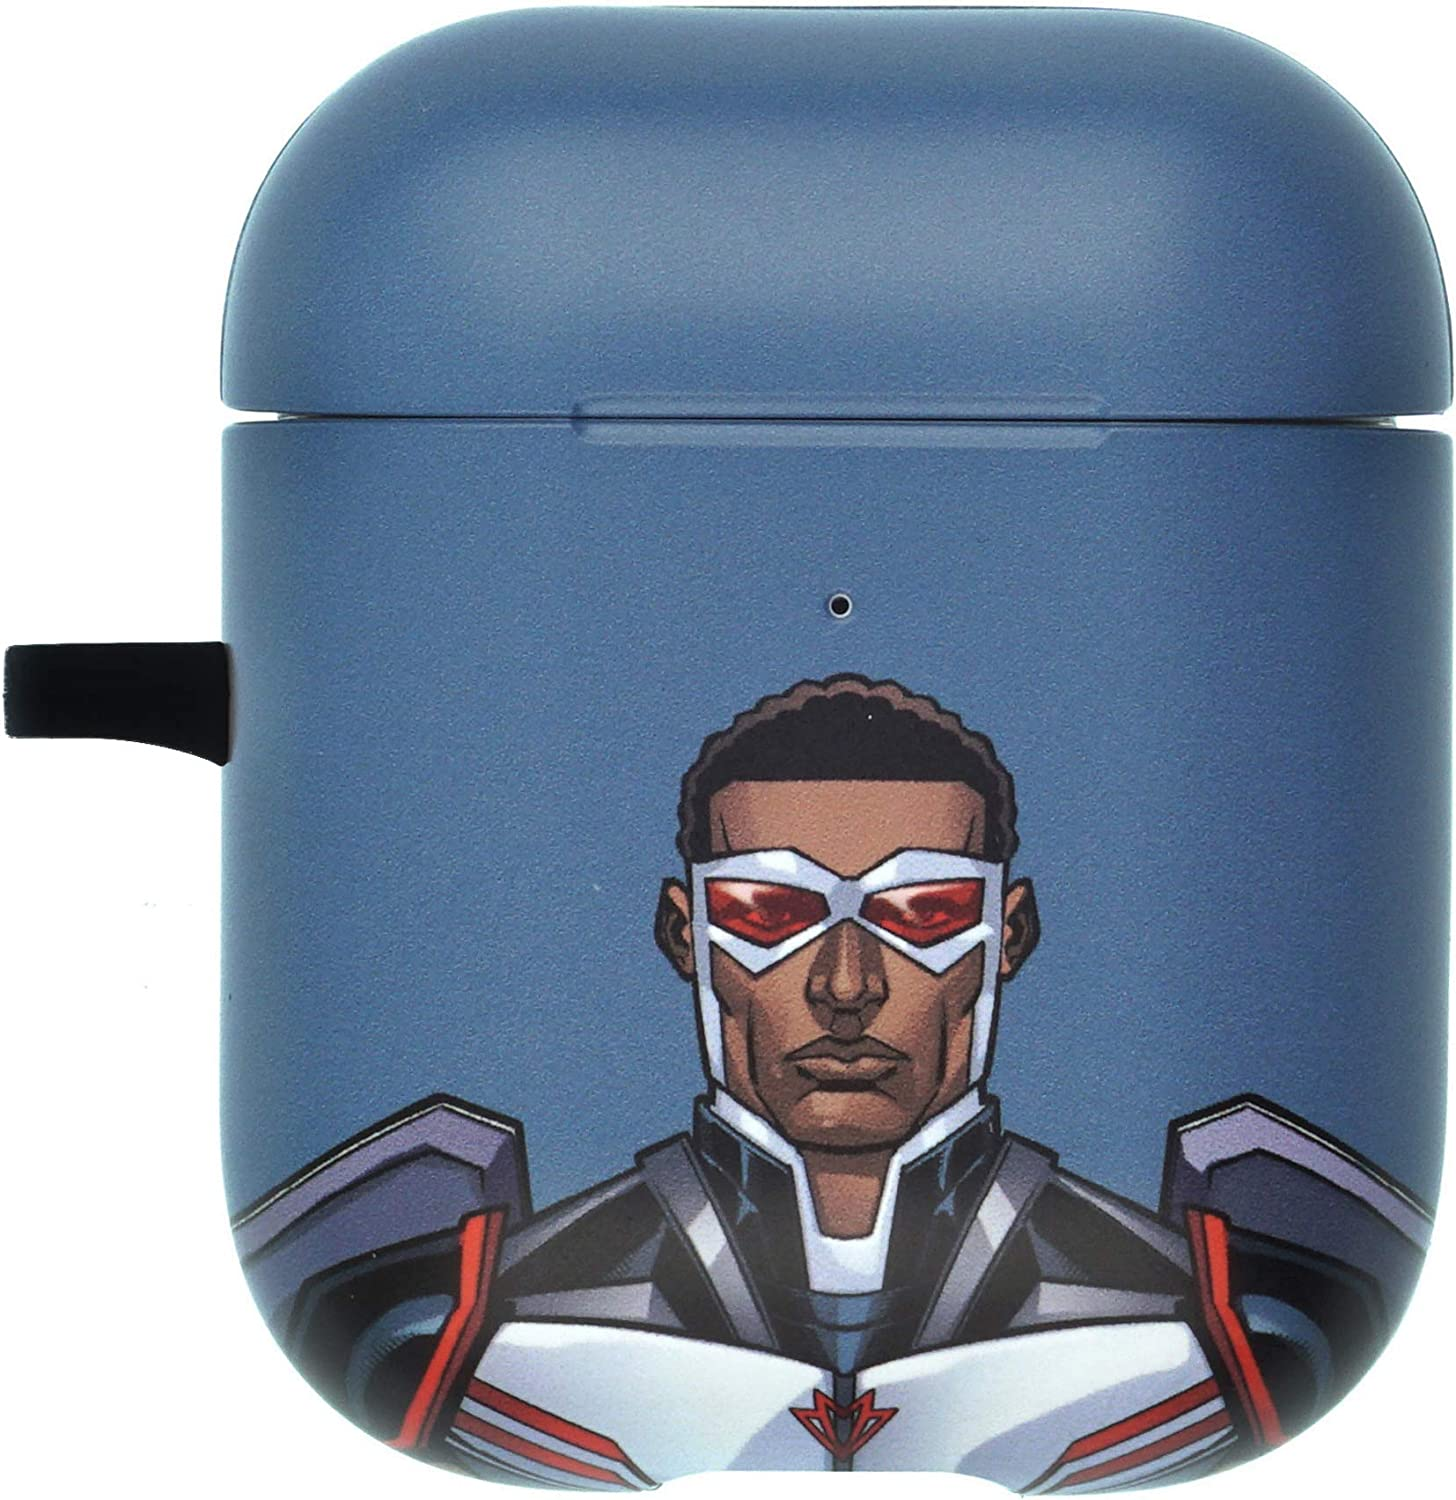 Avengers AirPods Case with Neck Lanyard Protective Hard PC Shell Strap Hole Cover Front LED Visible Accessories Compatible with Apple Airpods 1 /& AirPods 2 Action Iron Man